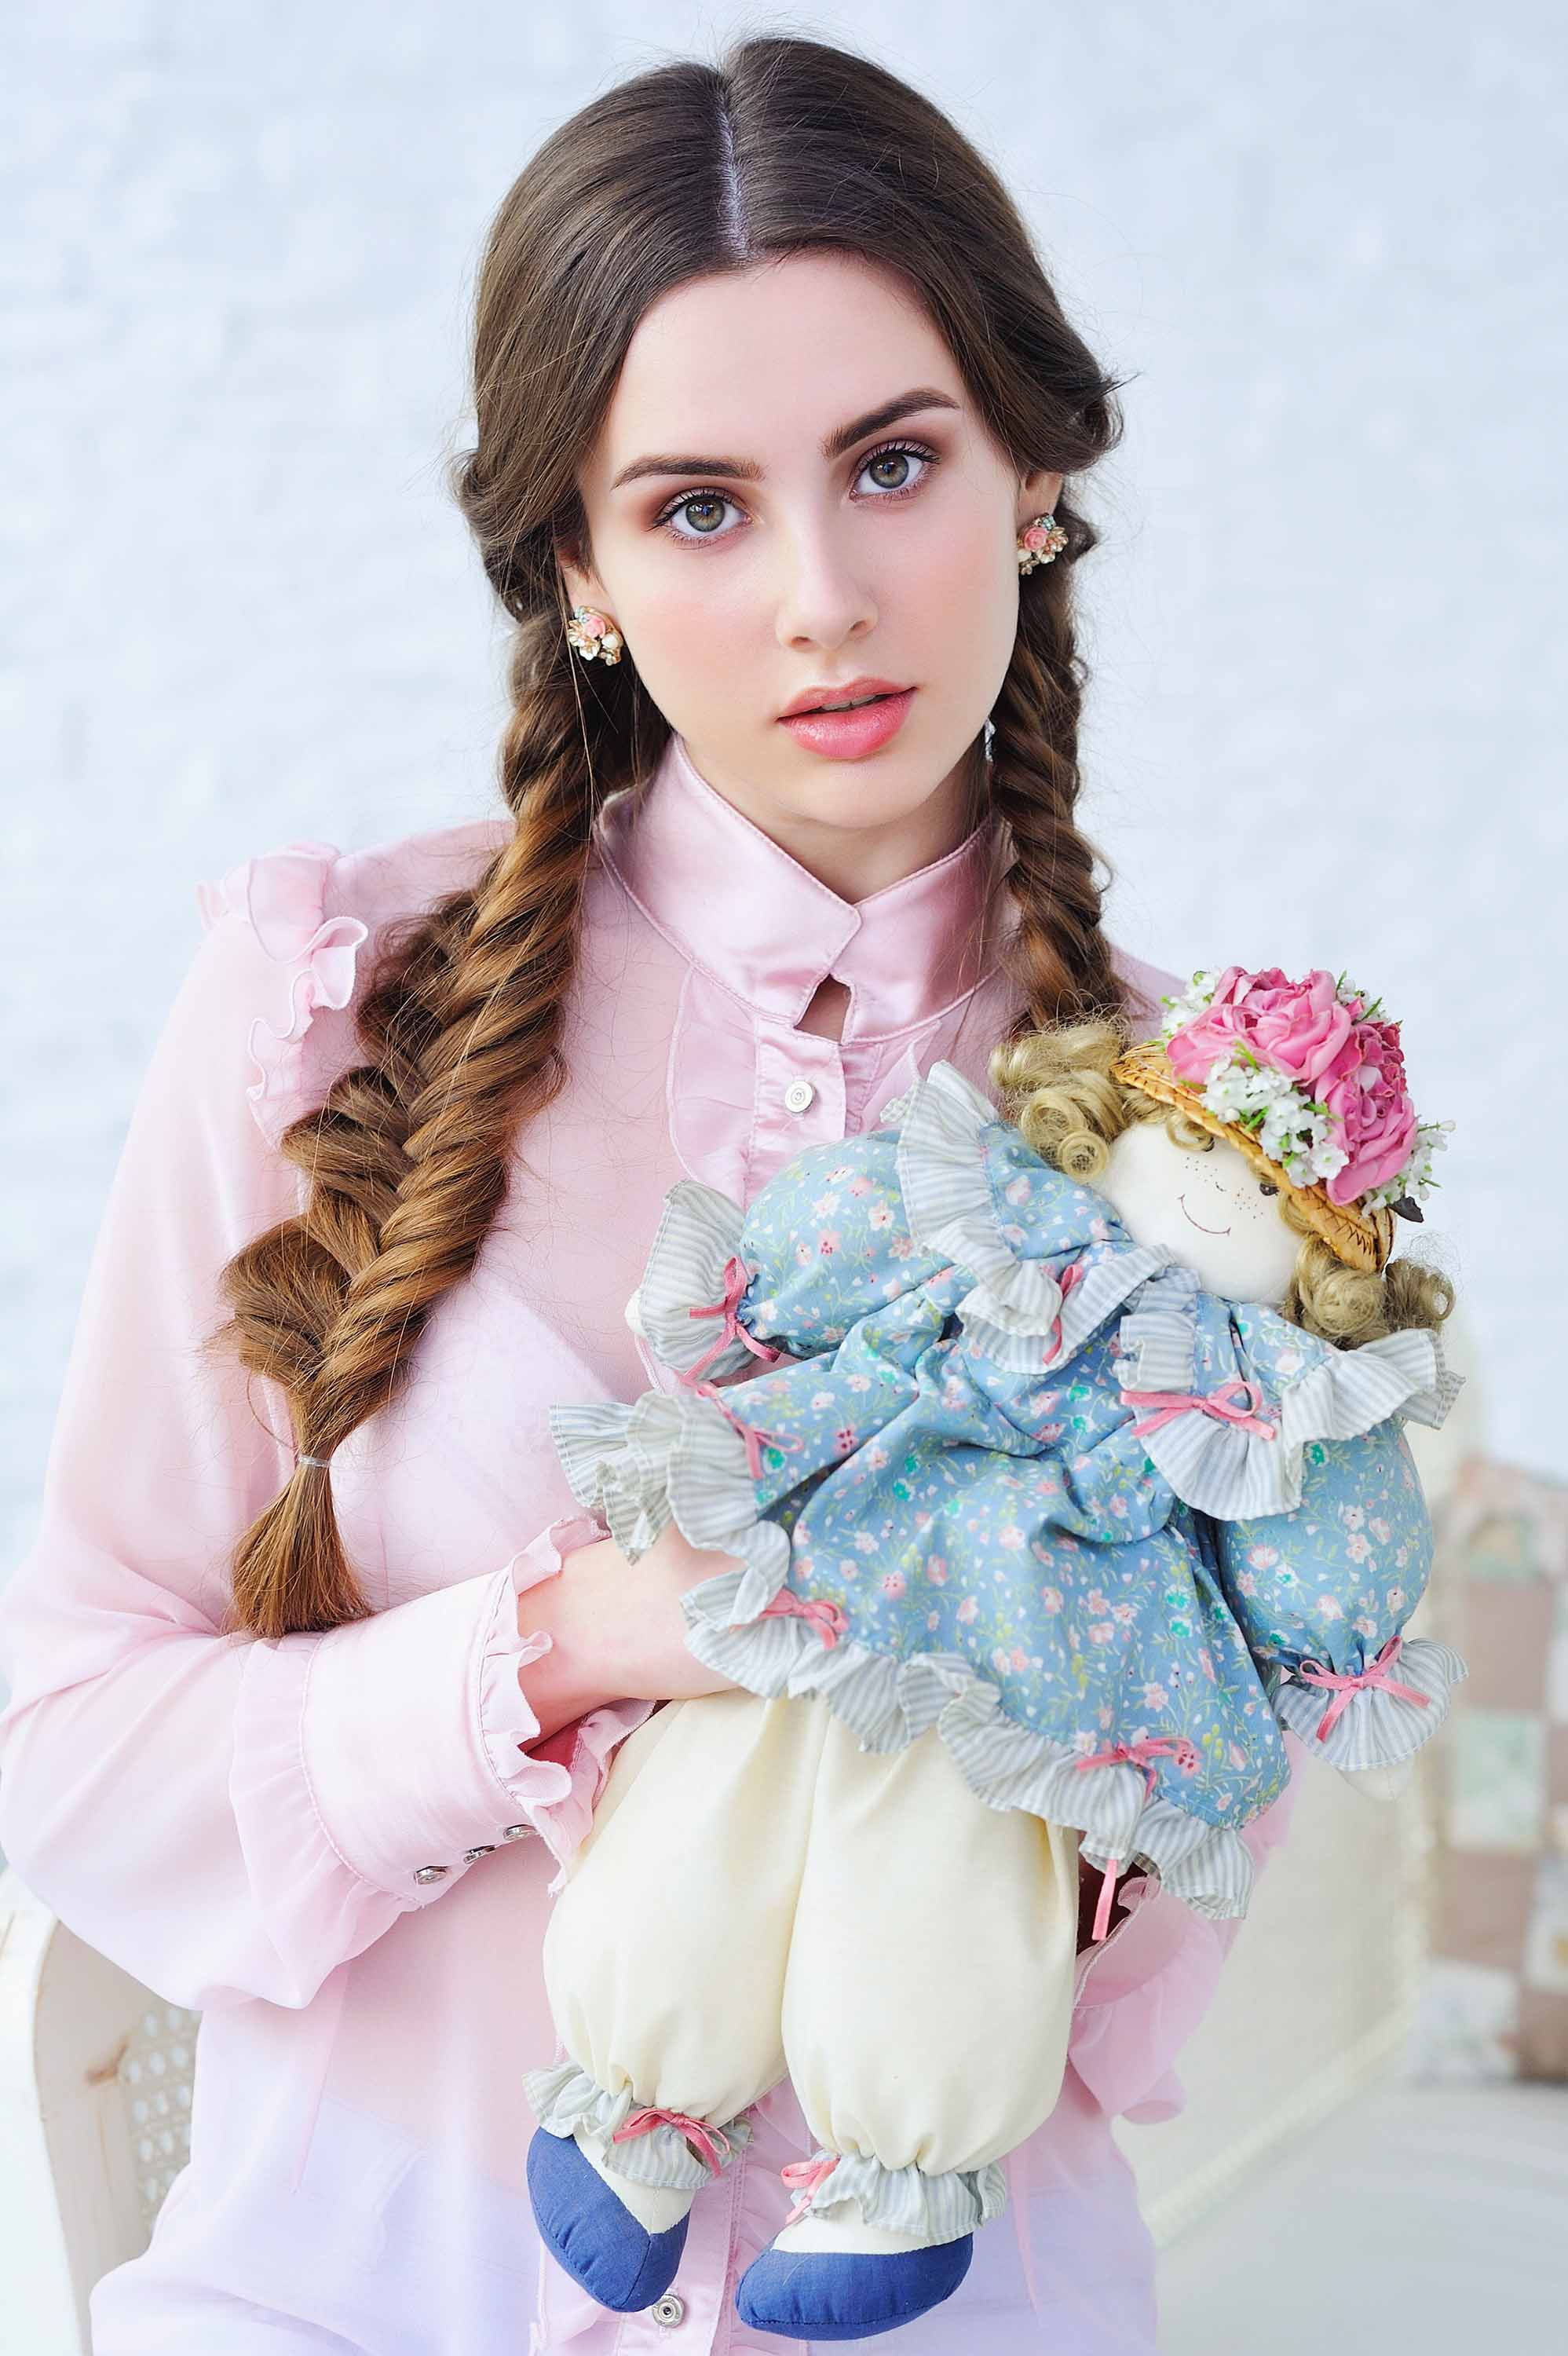 woman with long brown hair in pigtail plaits wearing a pink blouse and holding a doll